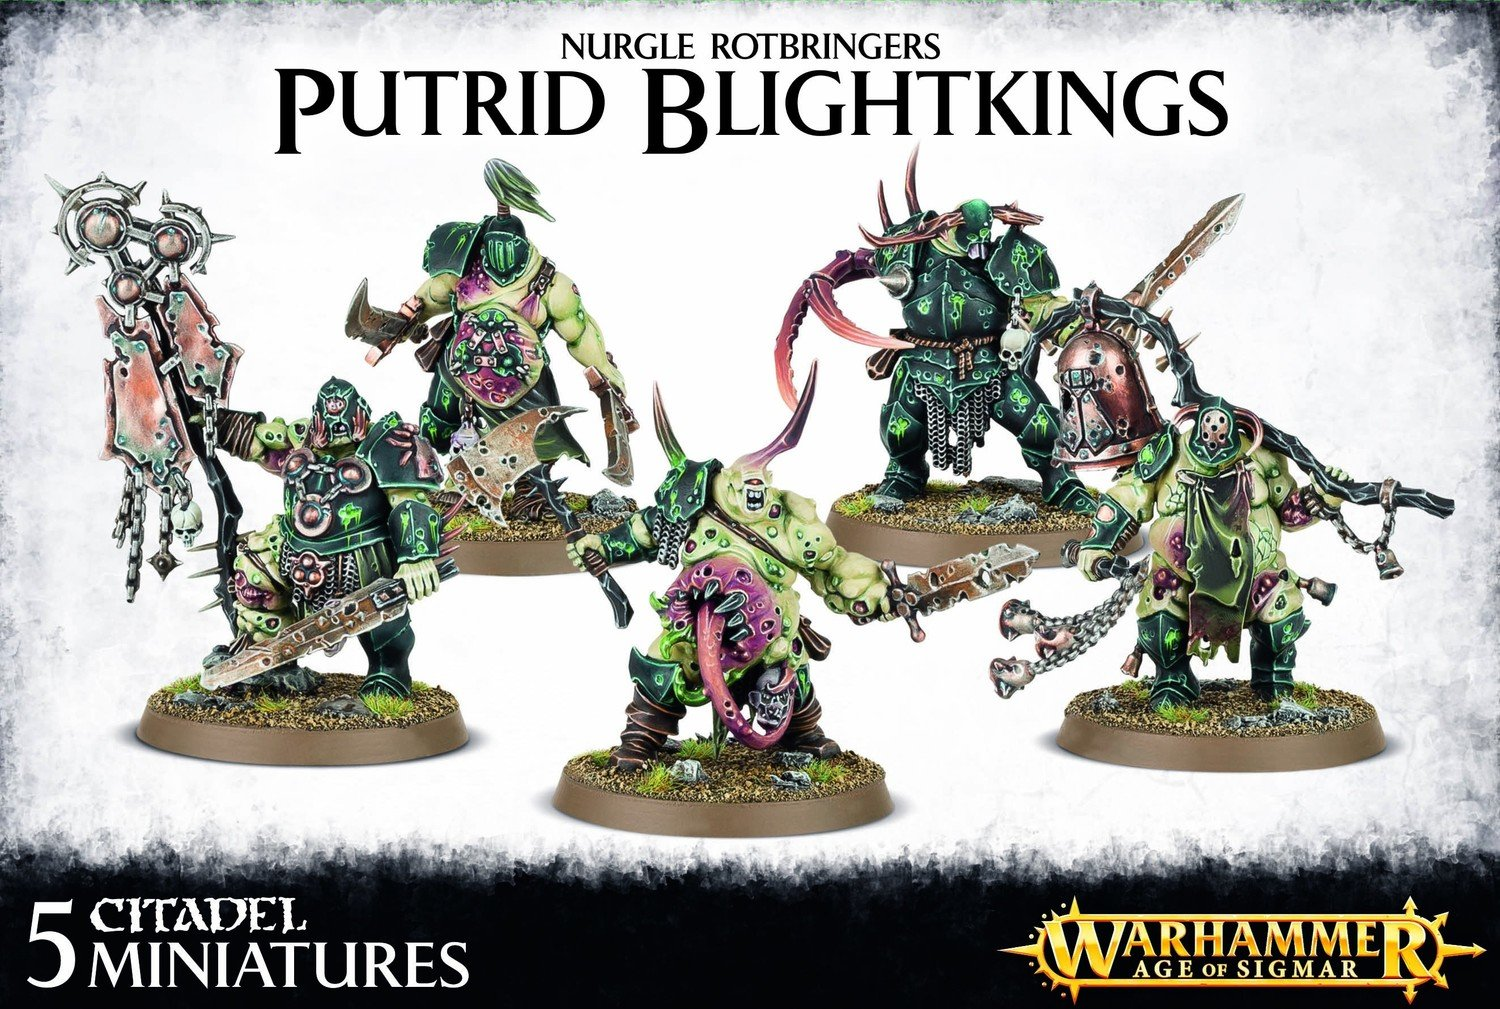 Putrid Blightkings - Age of Sigmar - Warhammer - Games Workshop